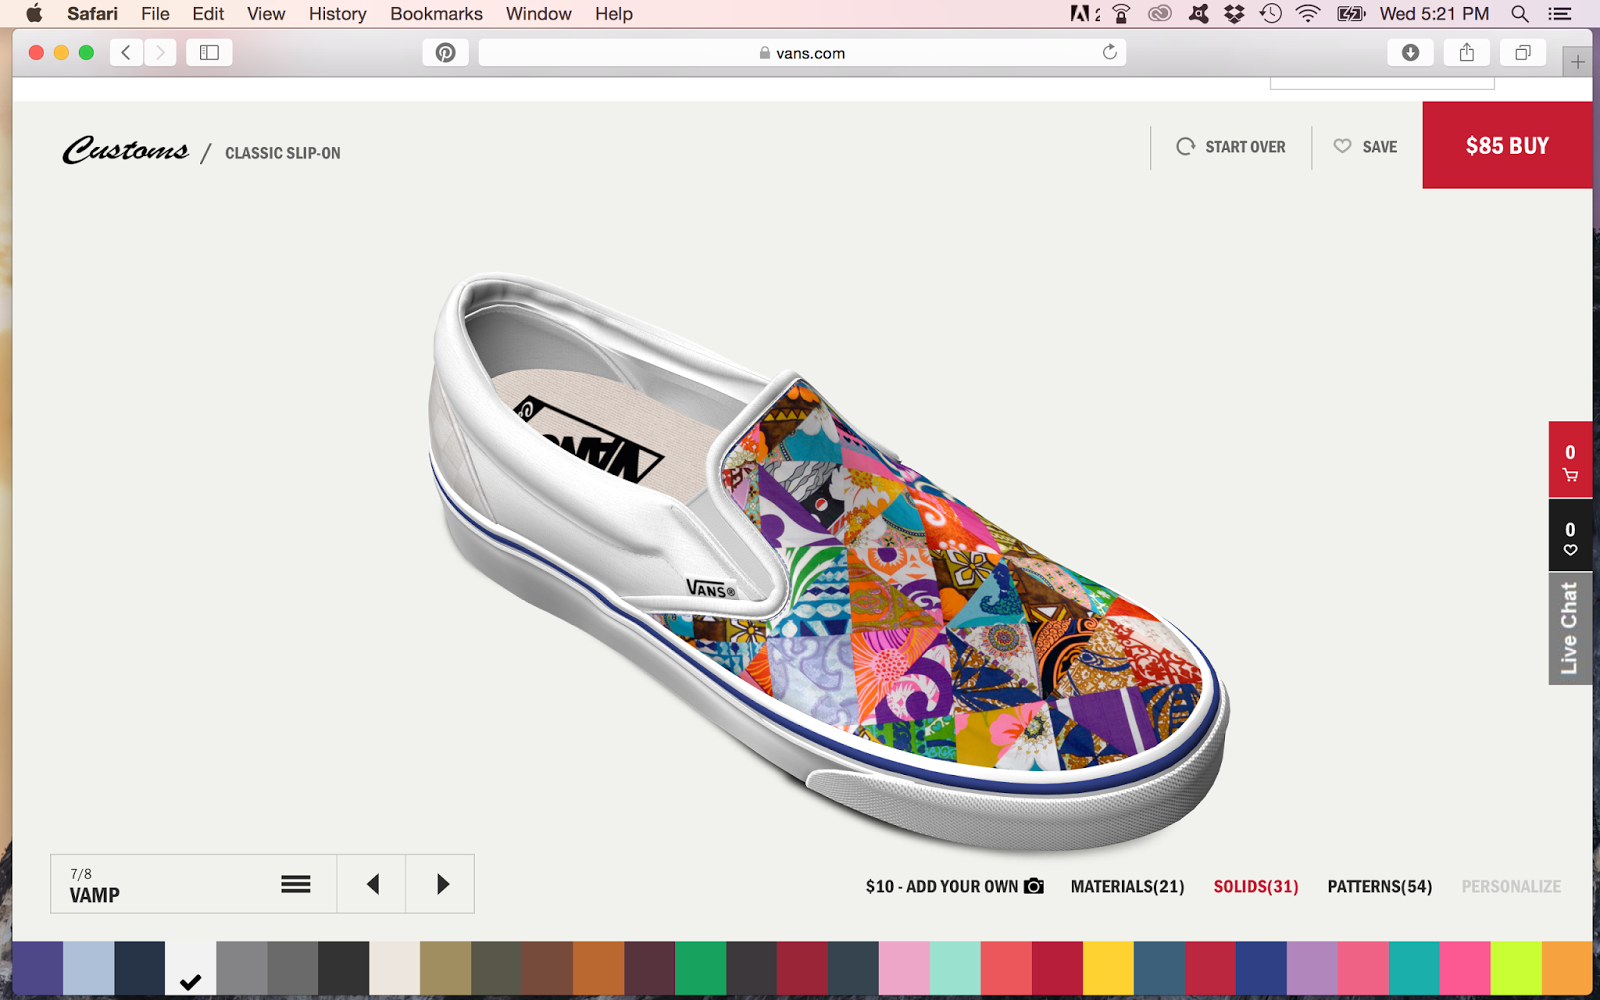 028937c8a4d14d It s easy to add your photos to Vans. Just go to the Vans website